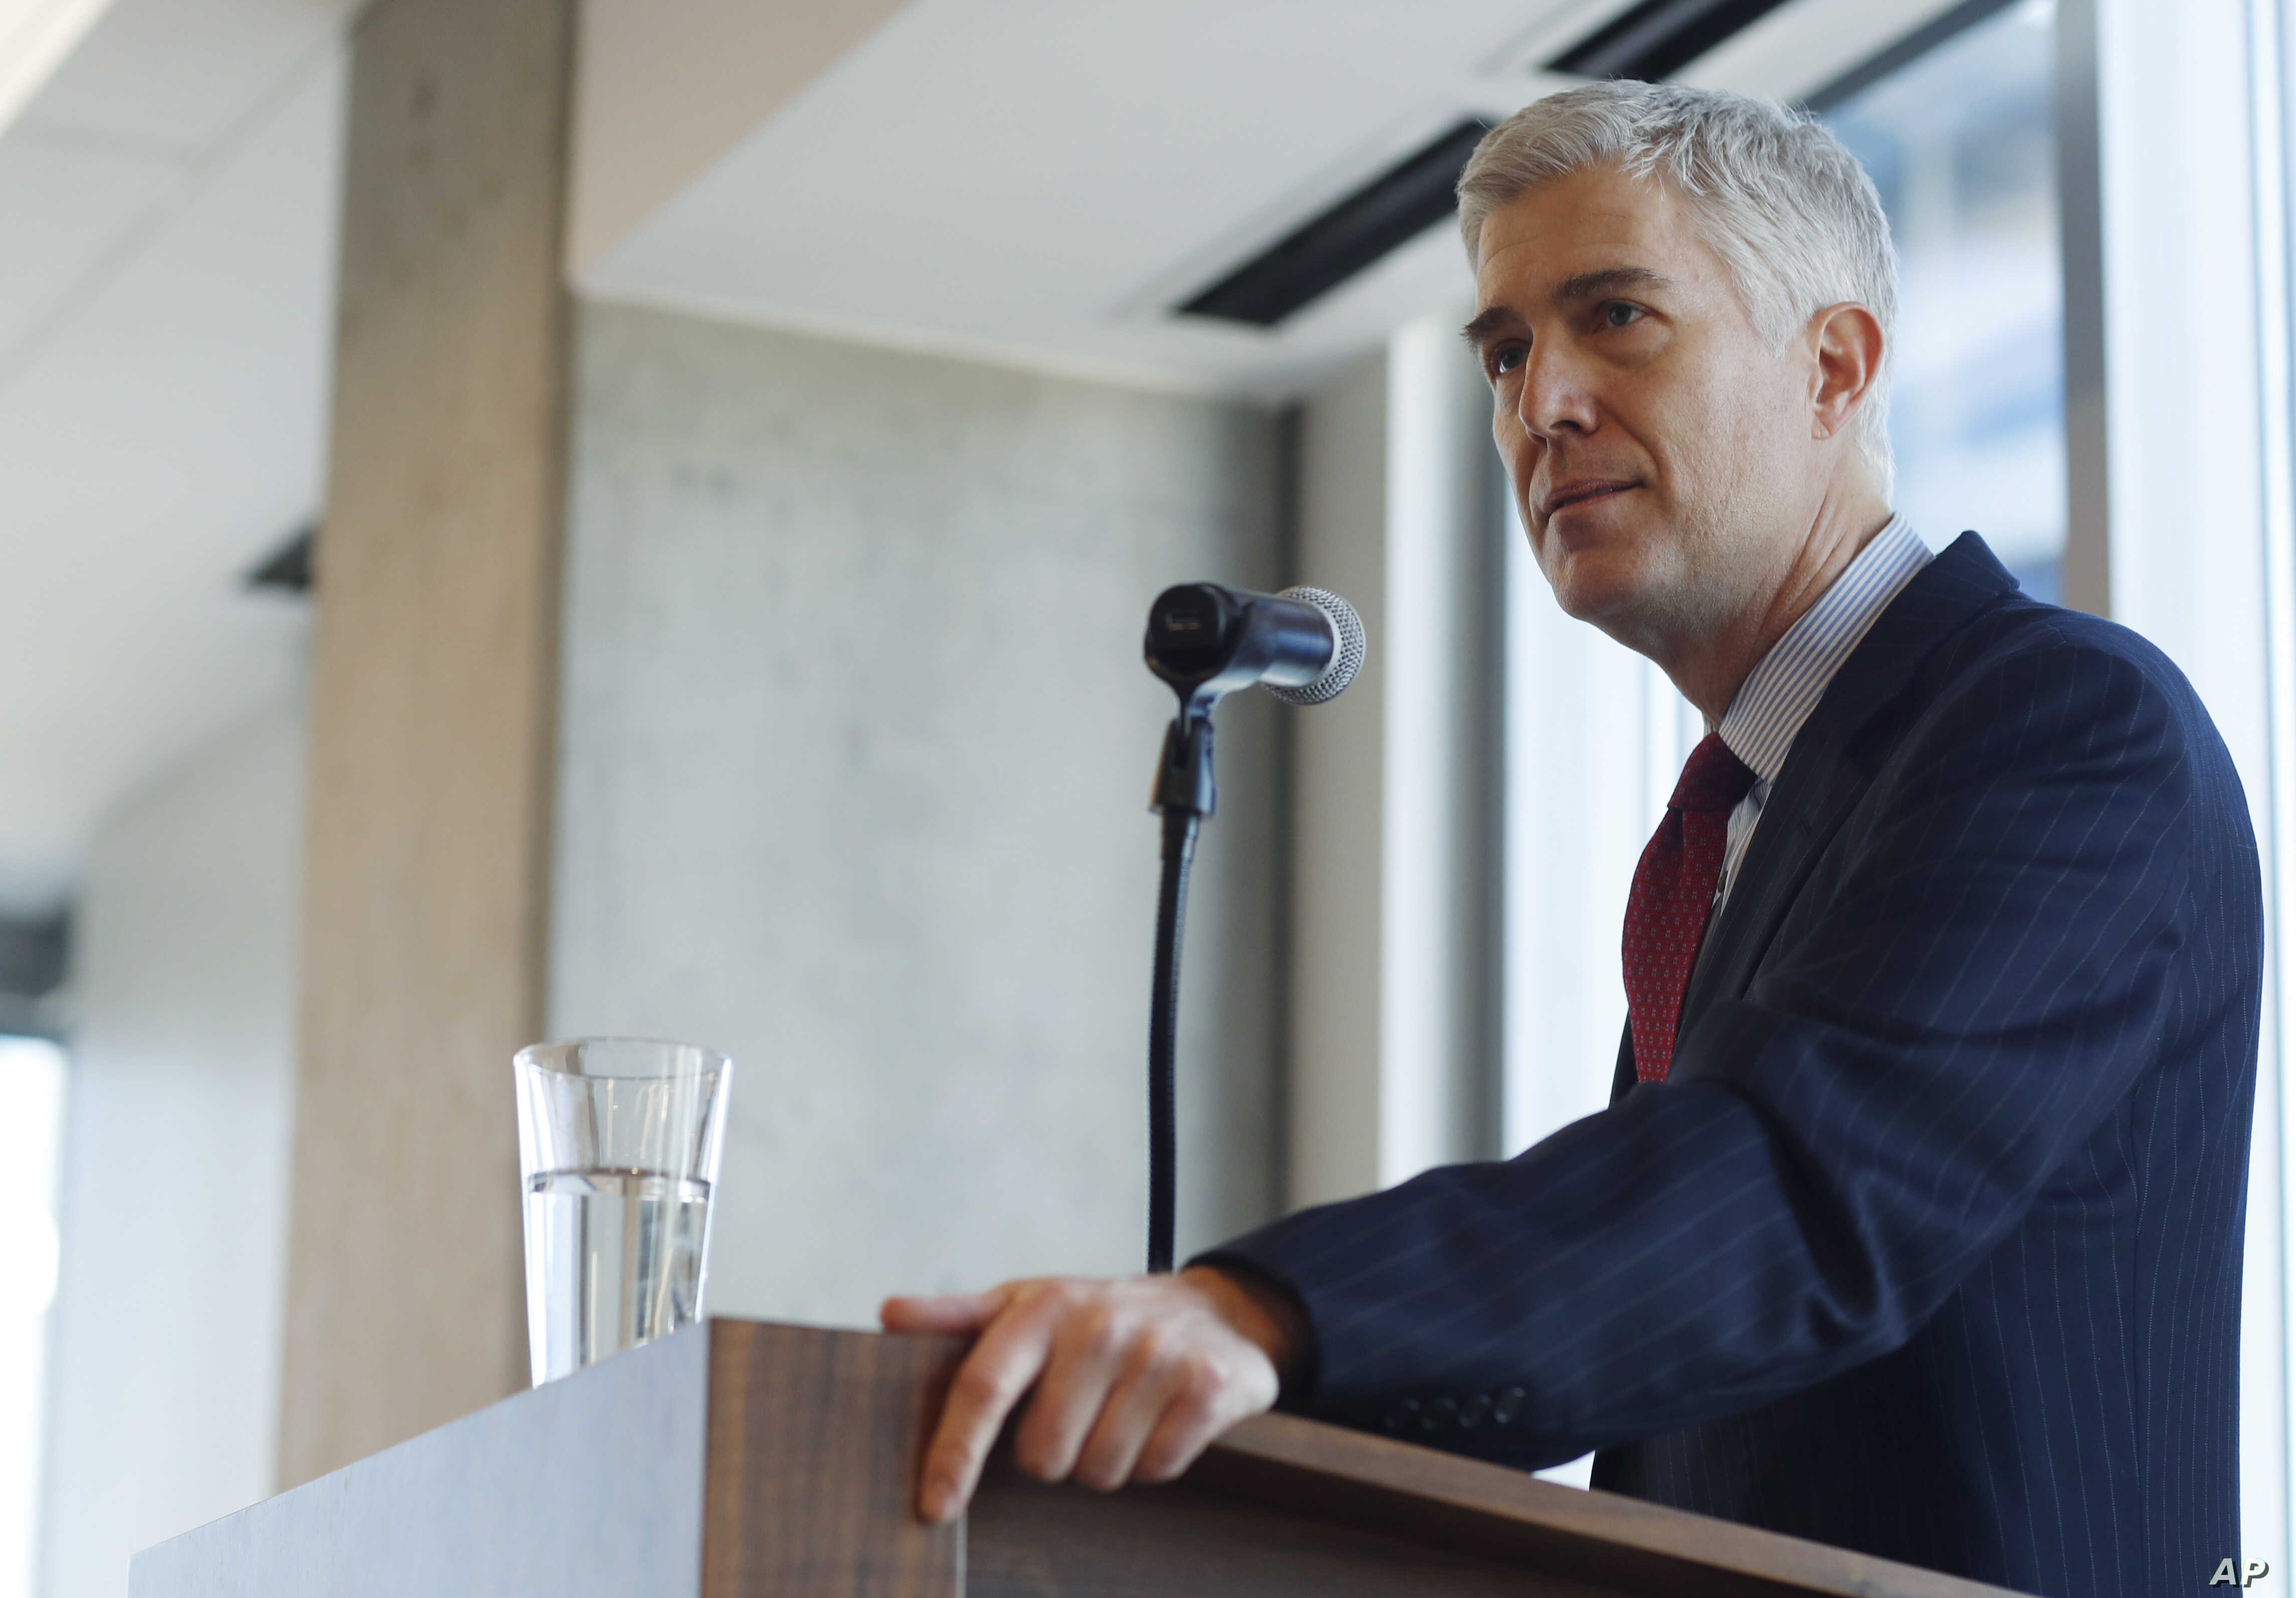 FILE - 10th U.S. Circuit Court of Appeals Judge Neil Gorsuch makes a point while delivering prepared remarks before a group of attorneys at a luncheon in a legal firm in lower downtown Denver, Jan. 27, 2017.